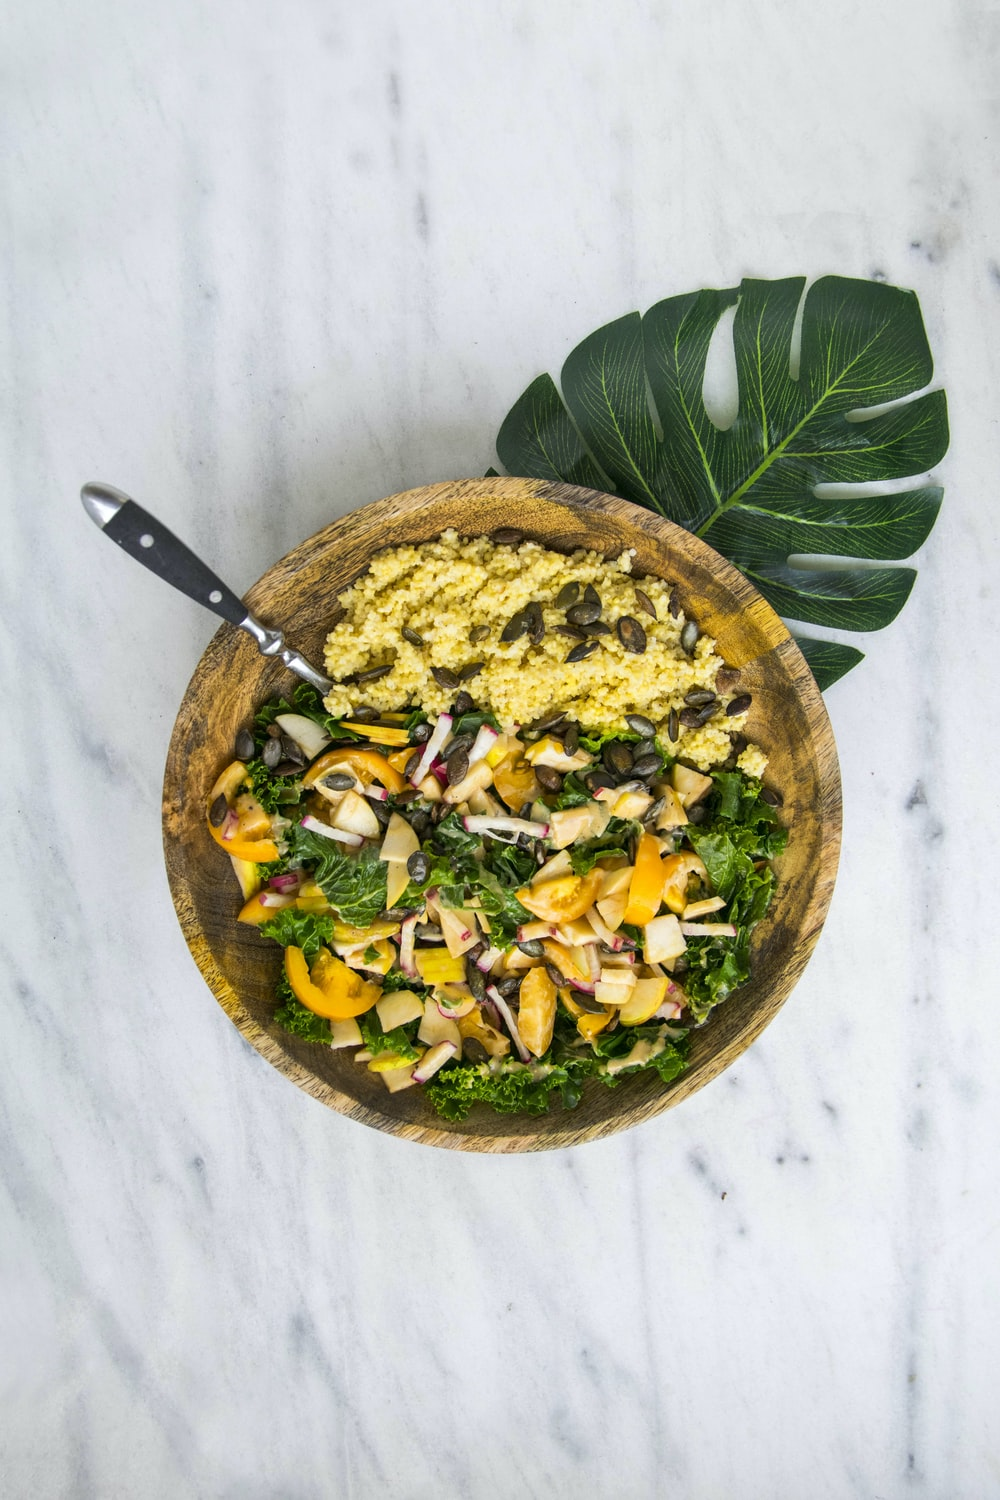 cooked rice with vegetable salad in brown wooden bowl